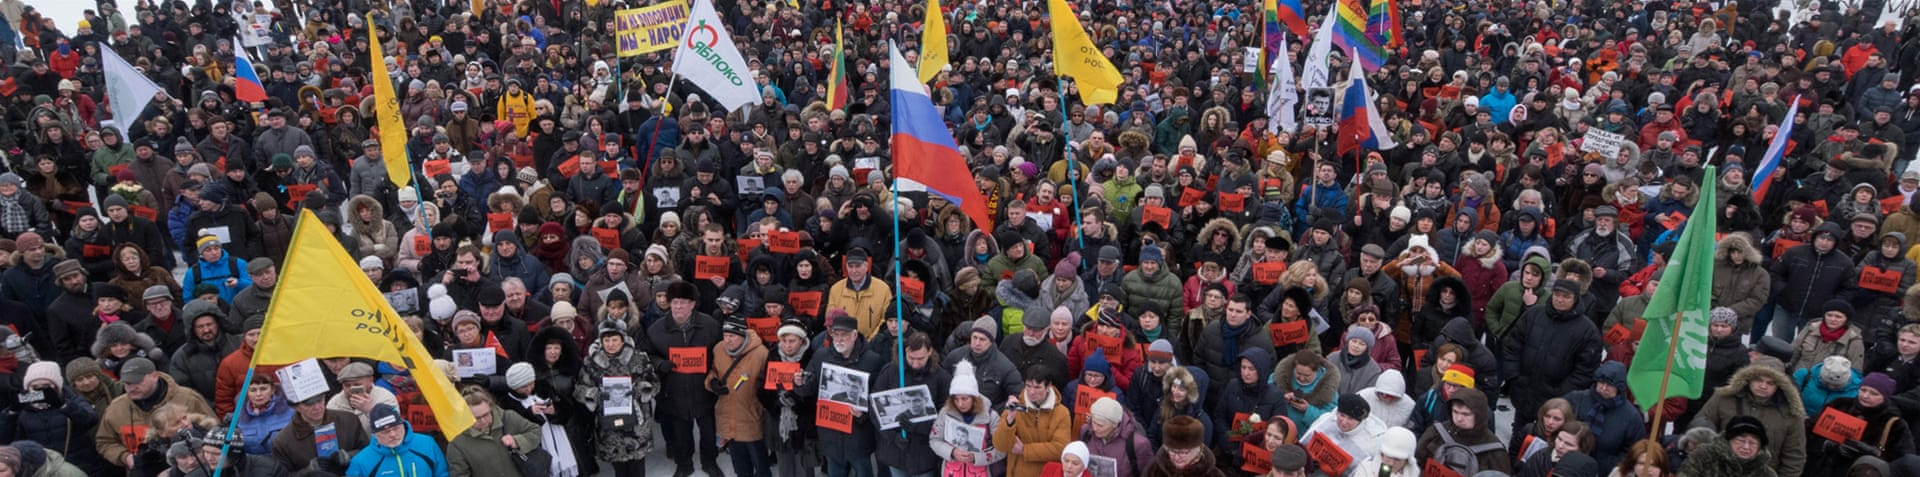 St Petersburg was one of the cities that saw Sunday's rallies [Dmitri Lovetsky/AP]